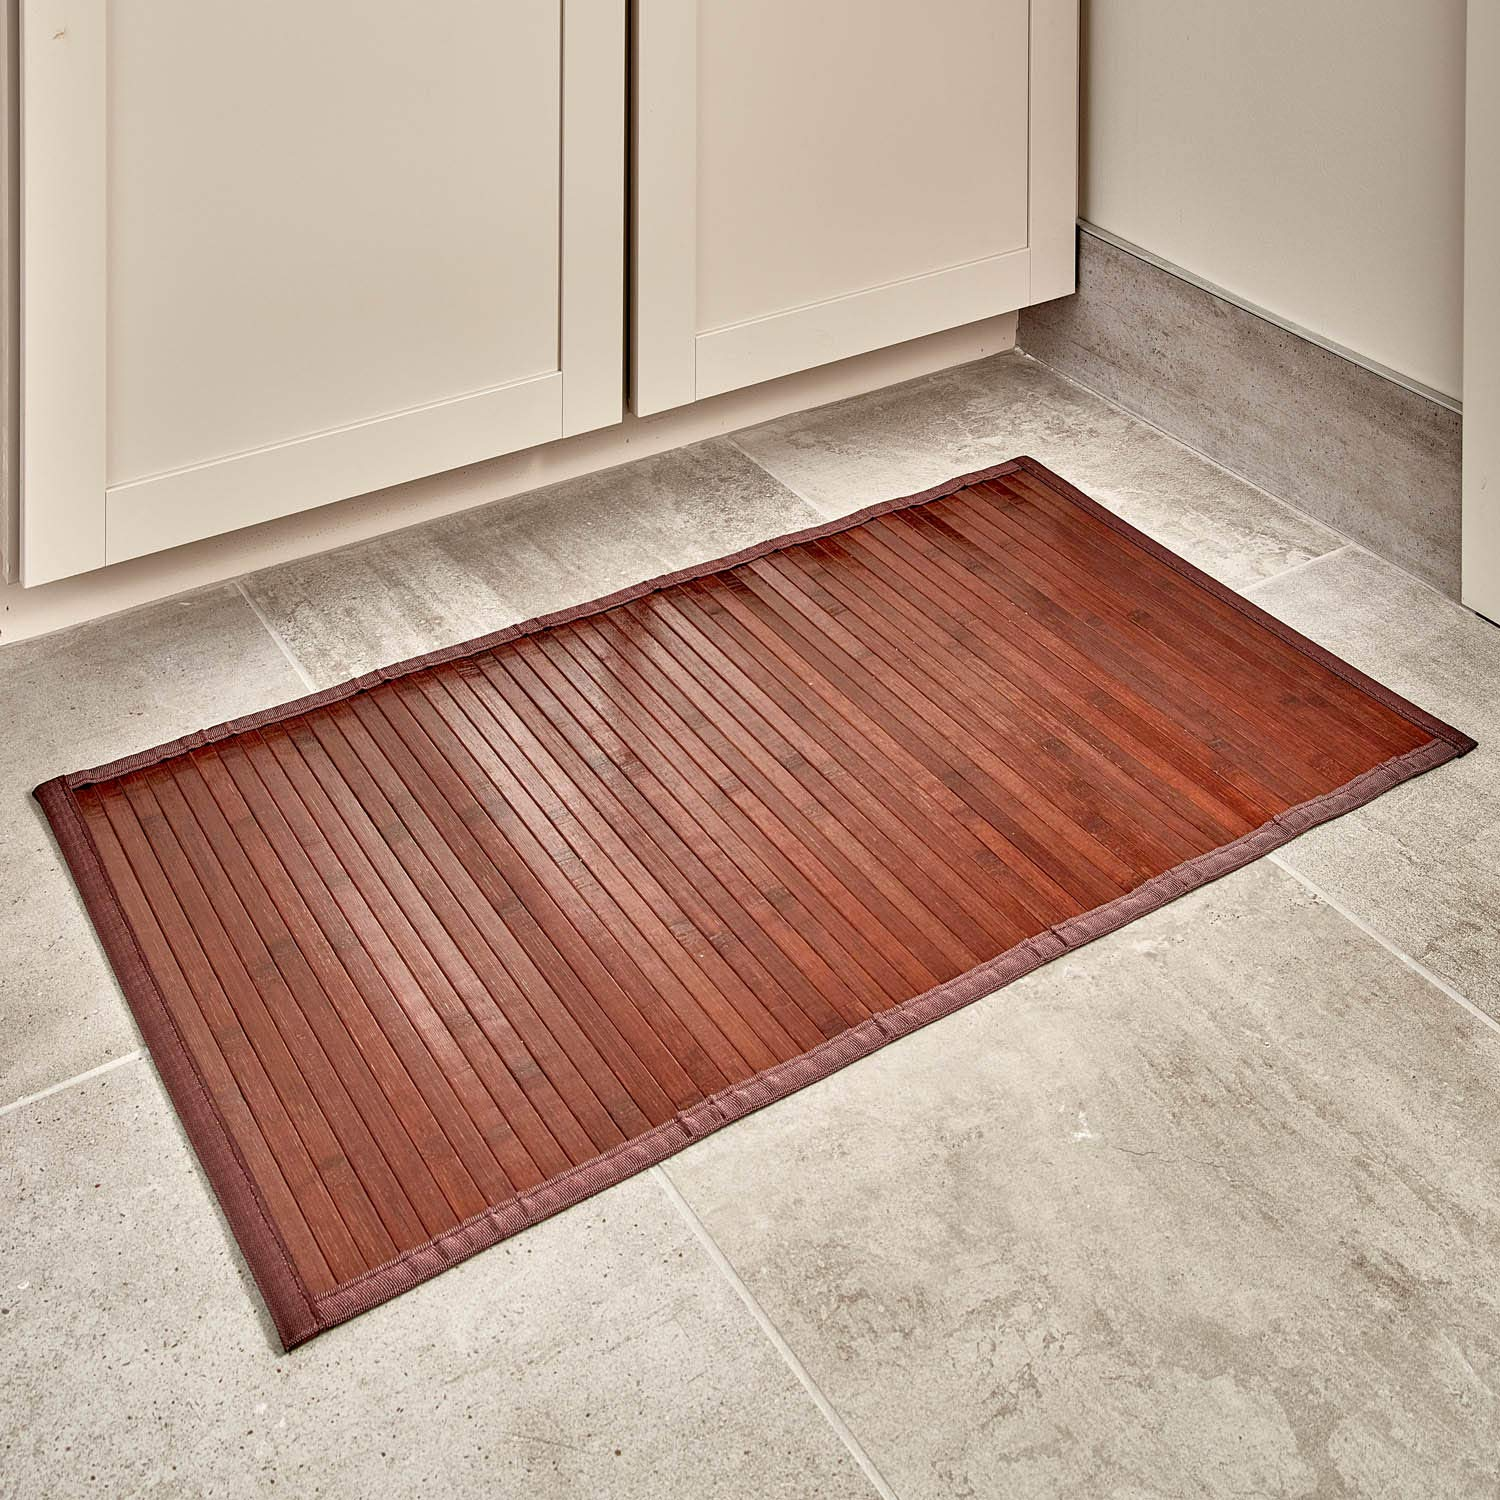 "iDesign Formbu Bamboo Floor Mat Non-Skid, Water-Resistant Runner Rug for Bathroom, Kitchen, Entryway, Hallway, Office, Mudroom, Vanity, 17"" x 24"", Mocha Brown"